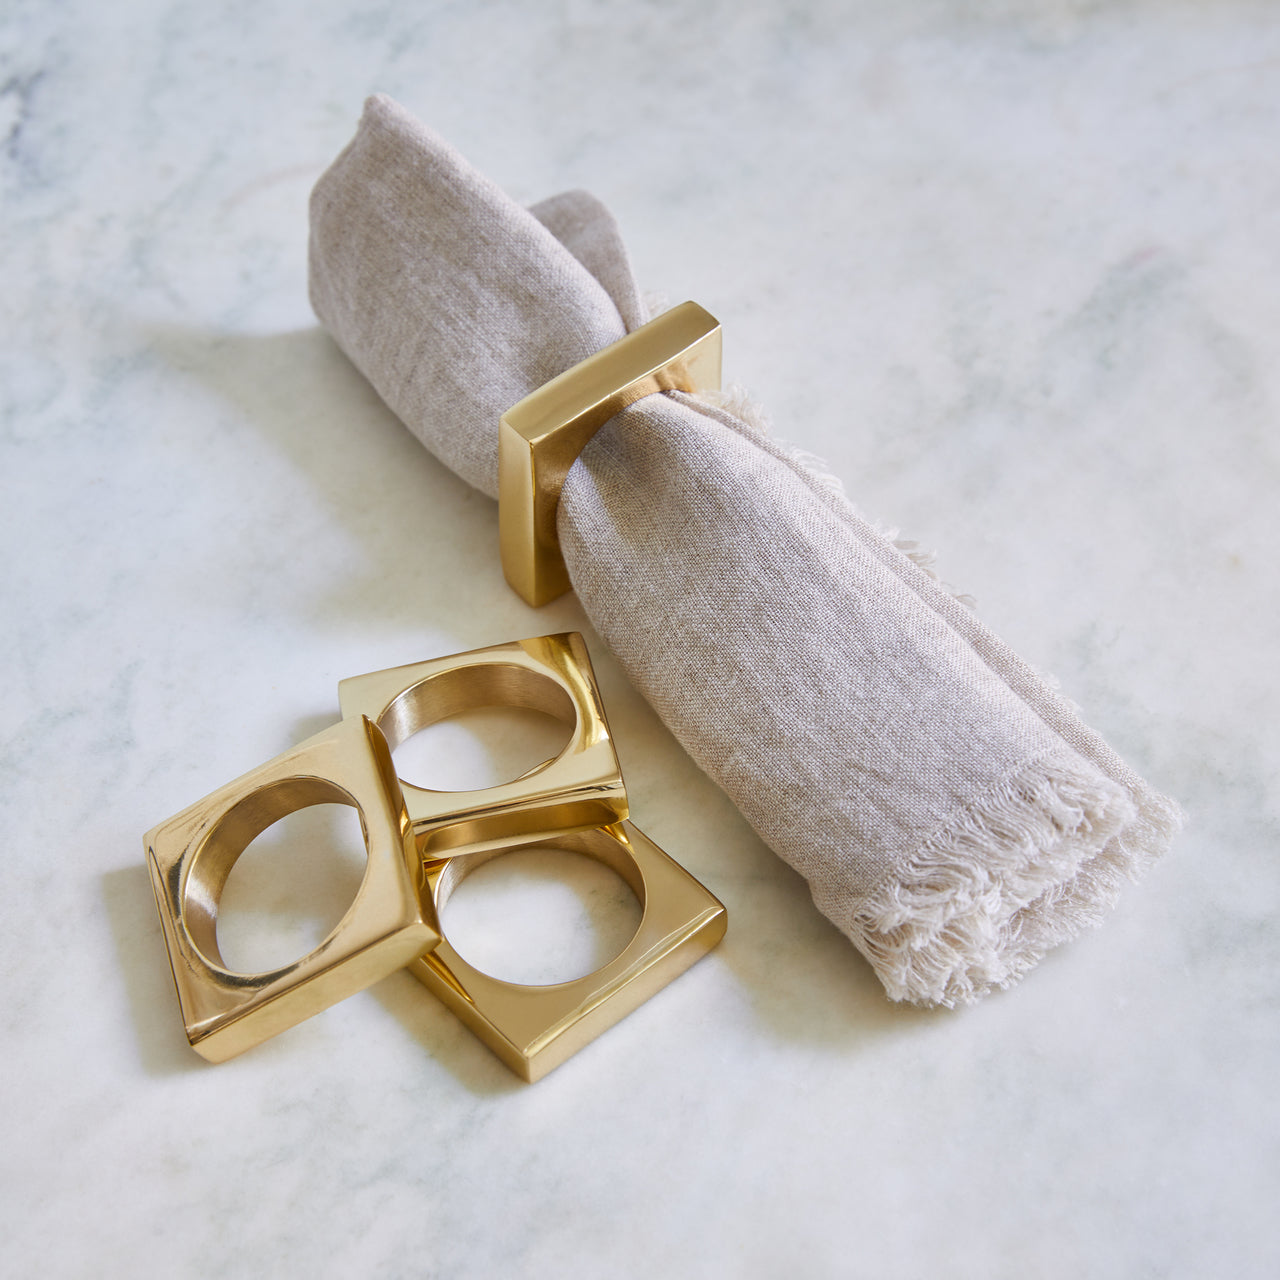 Brass Modernist Napkin Ring Set/2